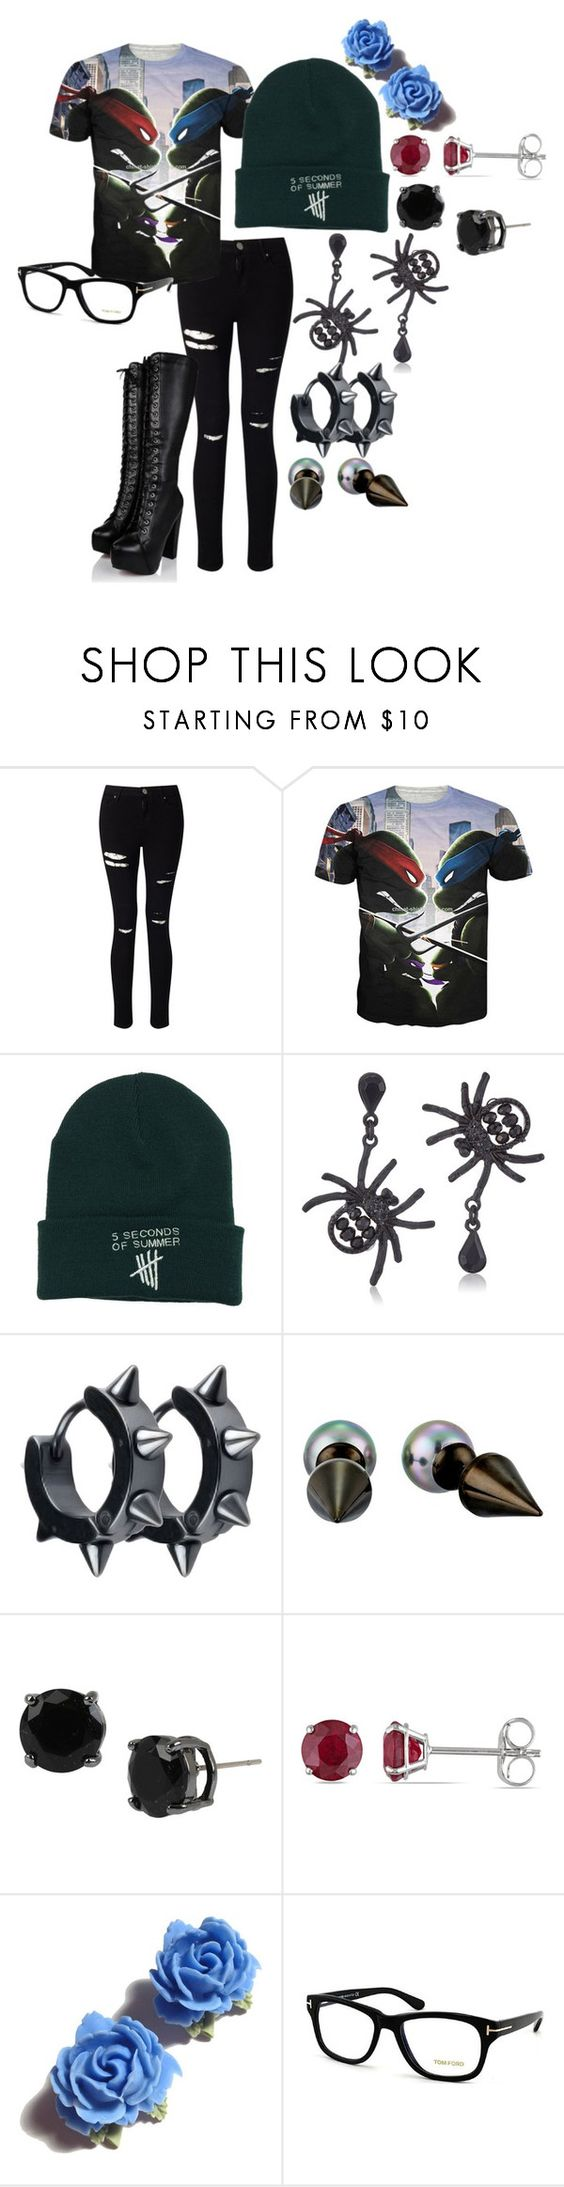 """Untitled #105"" by bikergal98 on Polyvore featuring Miss Selfridge, Betsey Johnson, Majorica, Mixit, Allurez, Tarina Tarantino and Tom Ford"